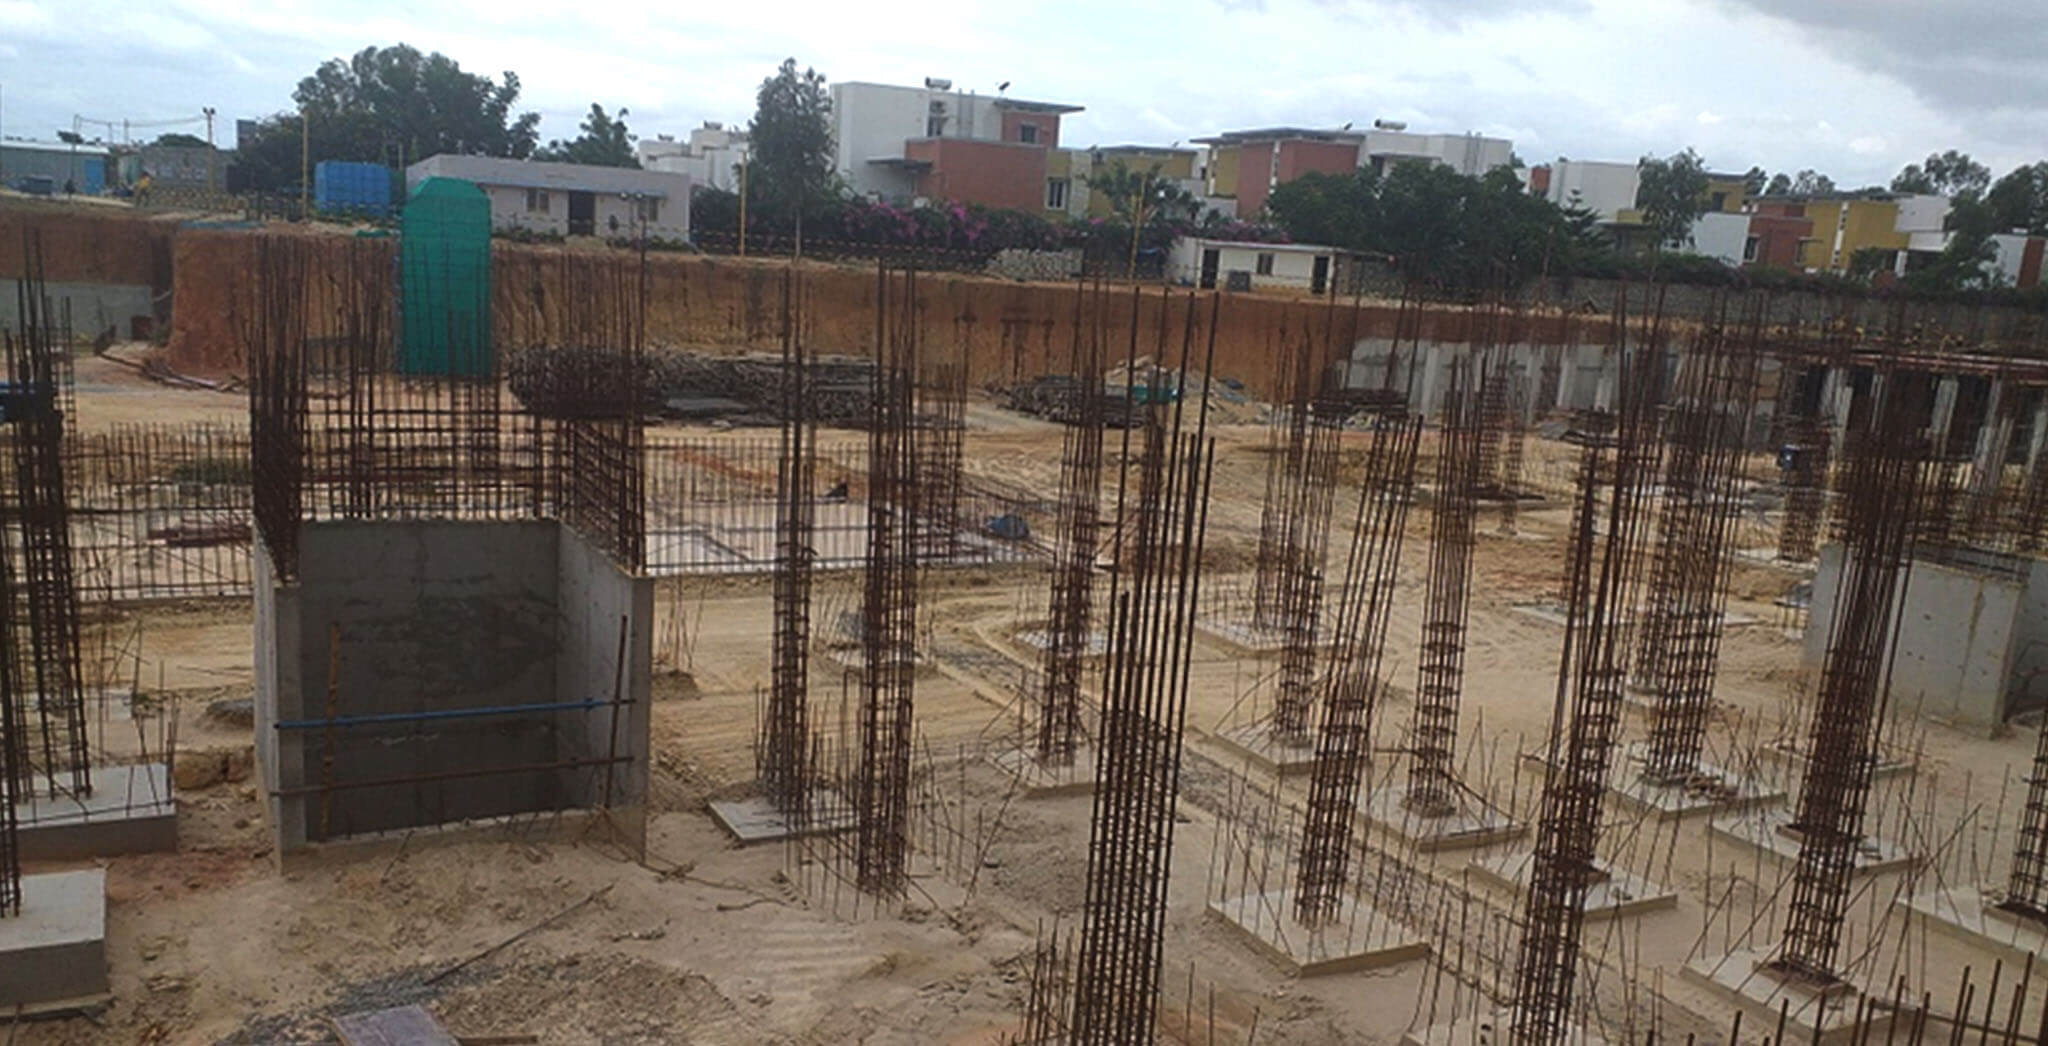 Aug 2019 - North side view: Q and R Block Footings completed, grade slab PCC and columns under progress.